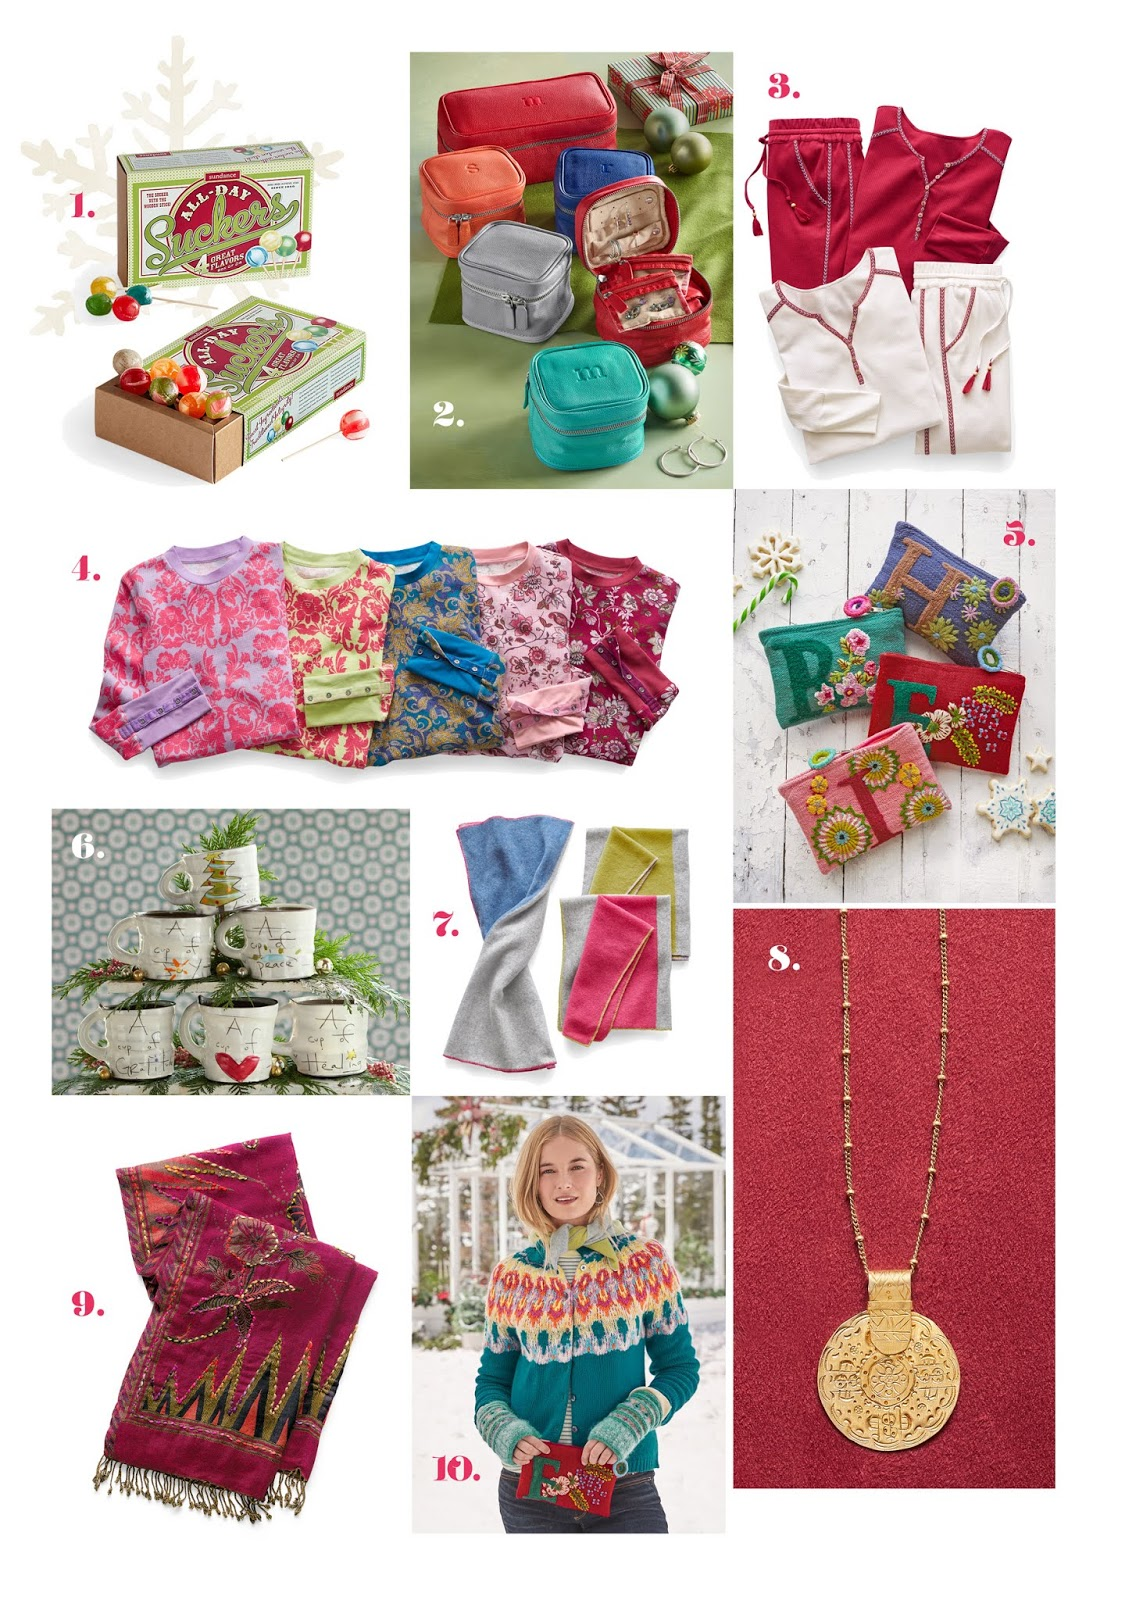 sundance catalog top 10 holiday gifts from the seasonal gift guide